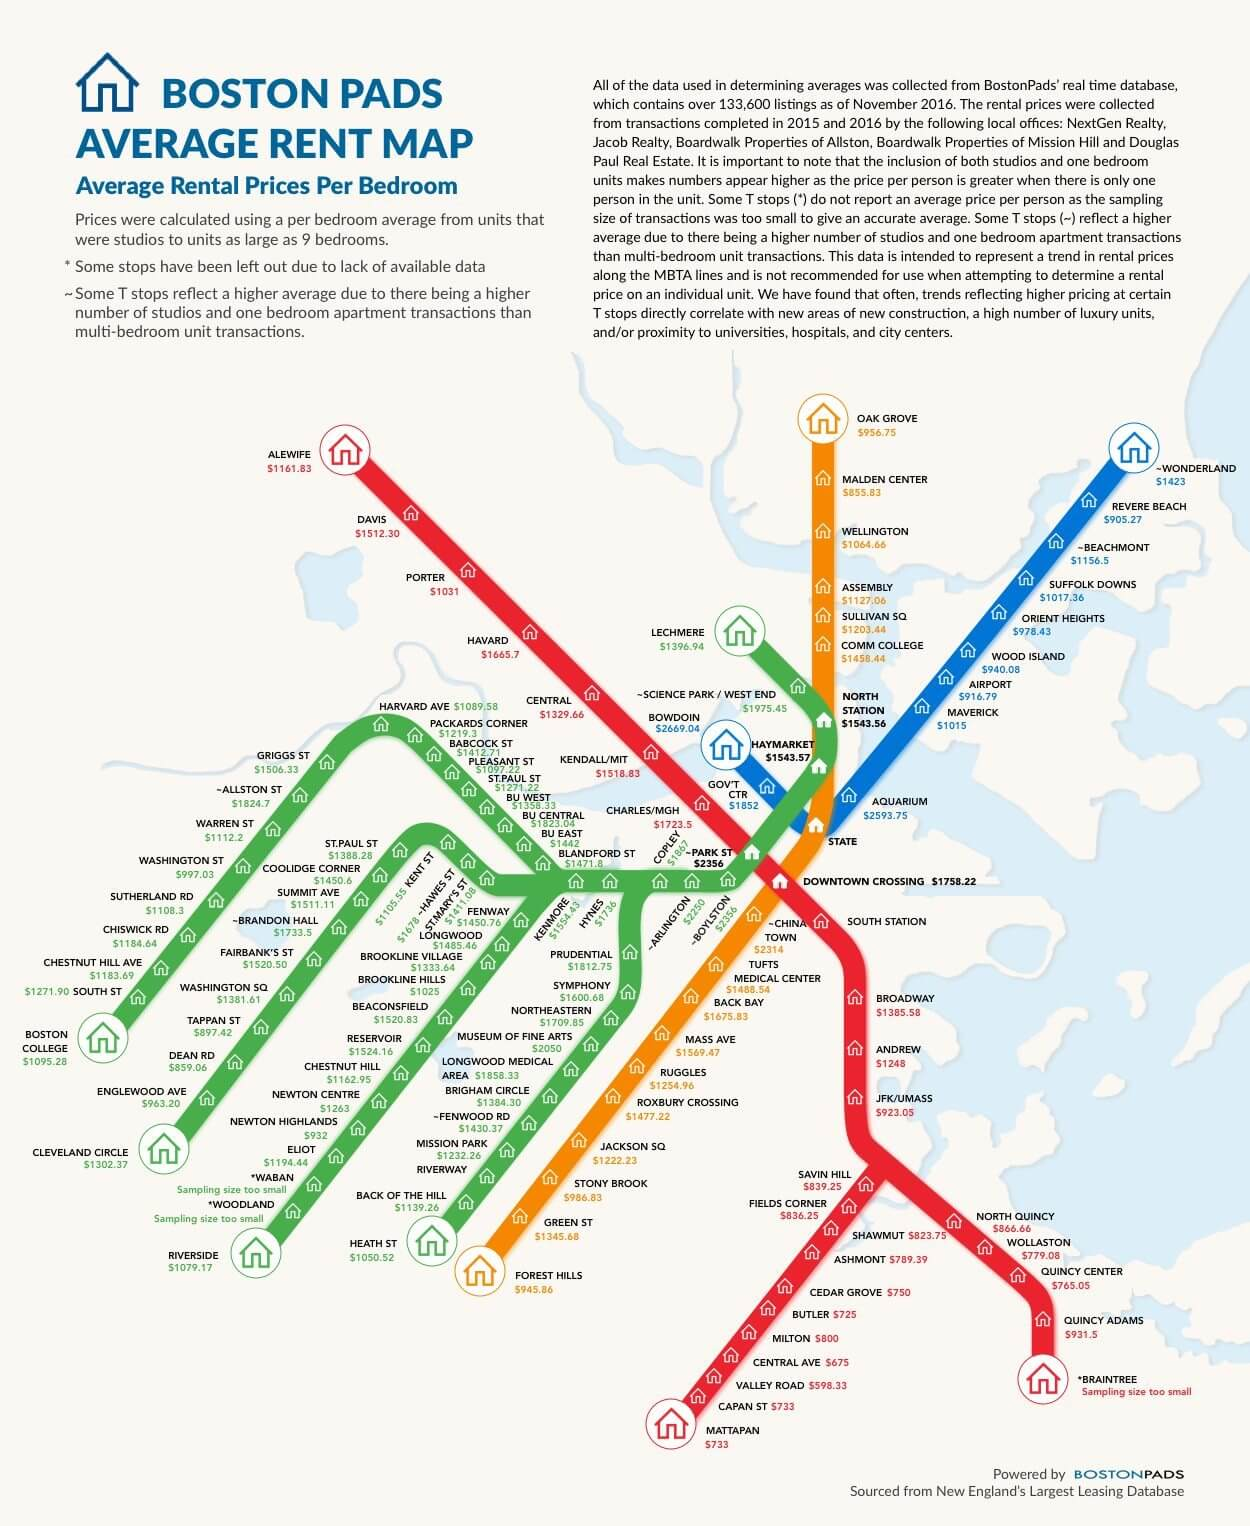 Apartment Rent Map: Average Boston Apartment Rent Prices By T Stop